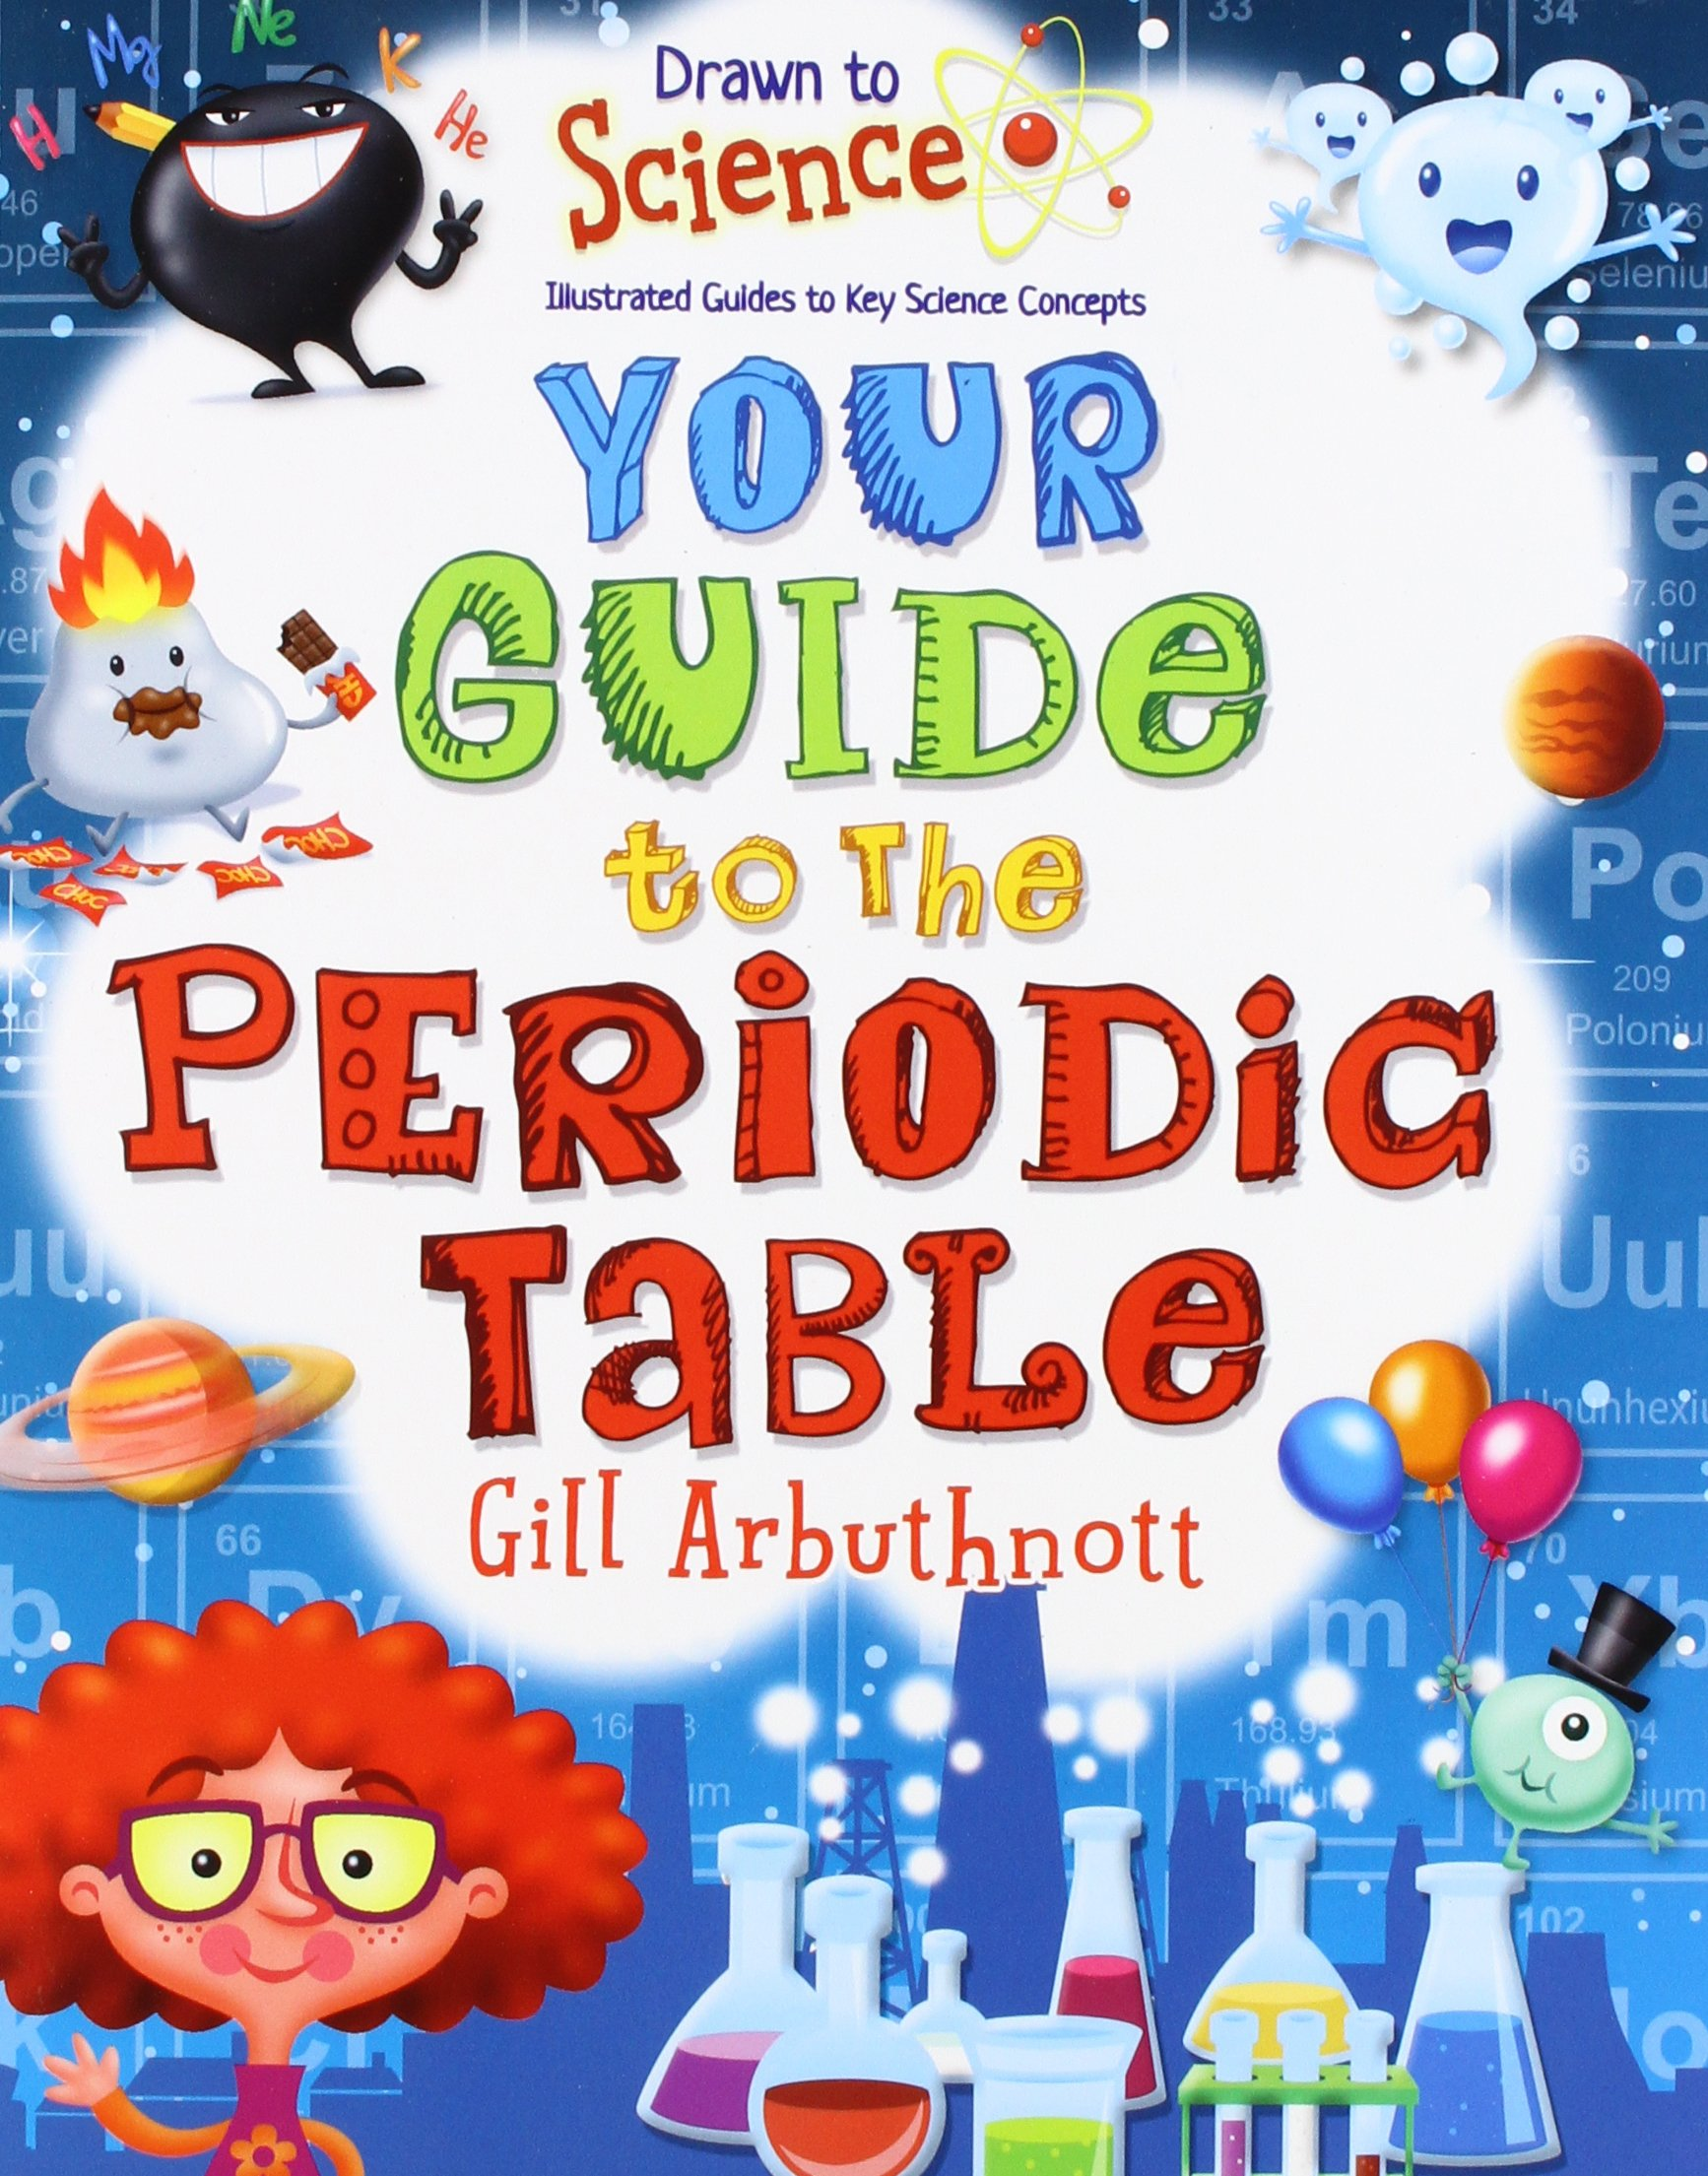 Your guide to the periodic table drawn to science illustrated your guide to the periodic table drawn to science illustrated guides to key science concepts gill arbuthnott marc mones 9780778722533 amazon gamestrikefo Gallery